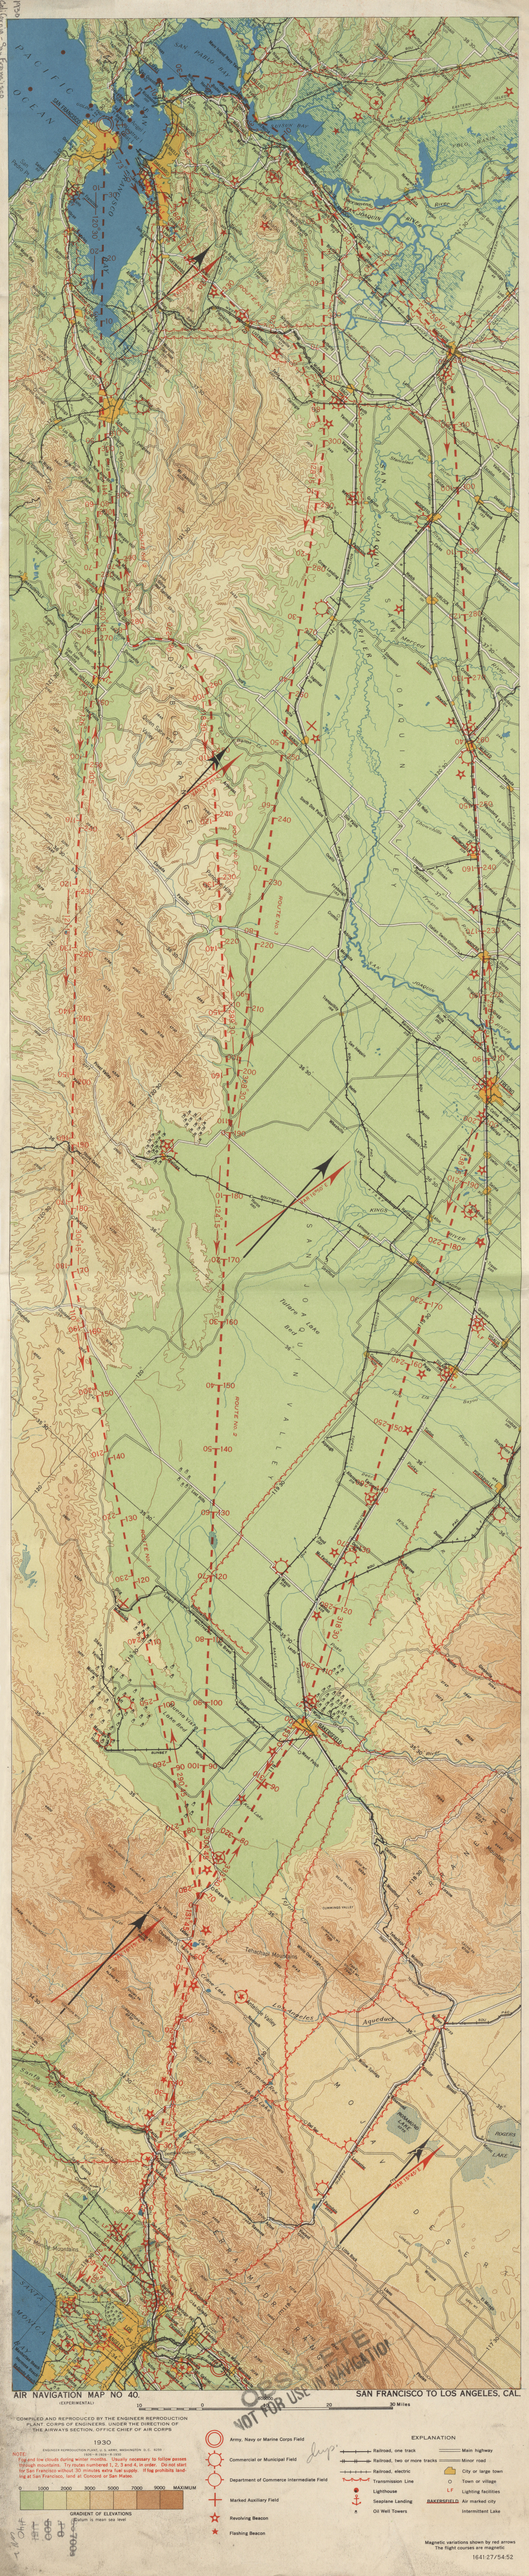 San Francisco To Los Angeles Map.United States Air Navigation Maps Perry Castaneda Map Collection